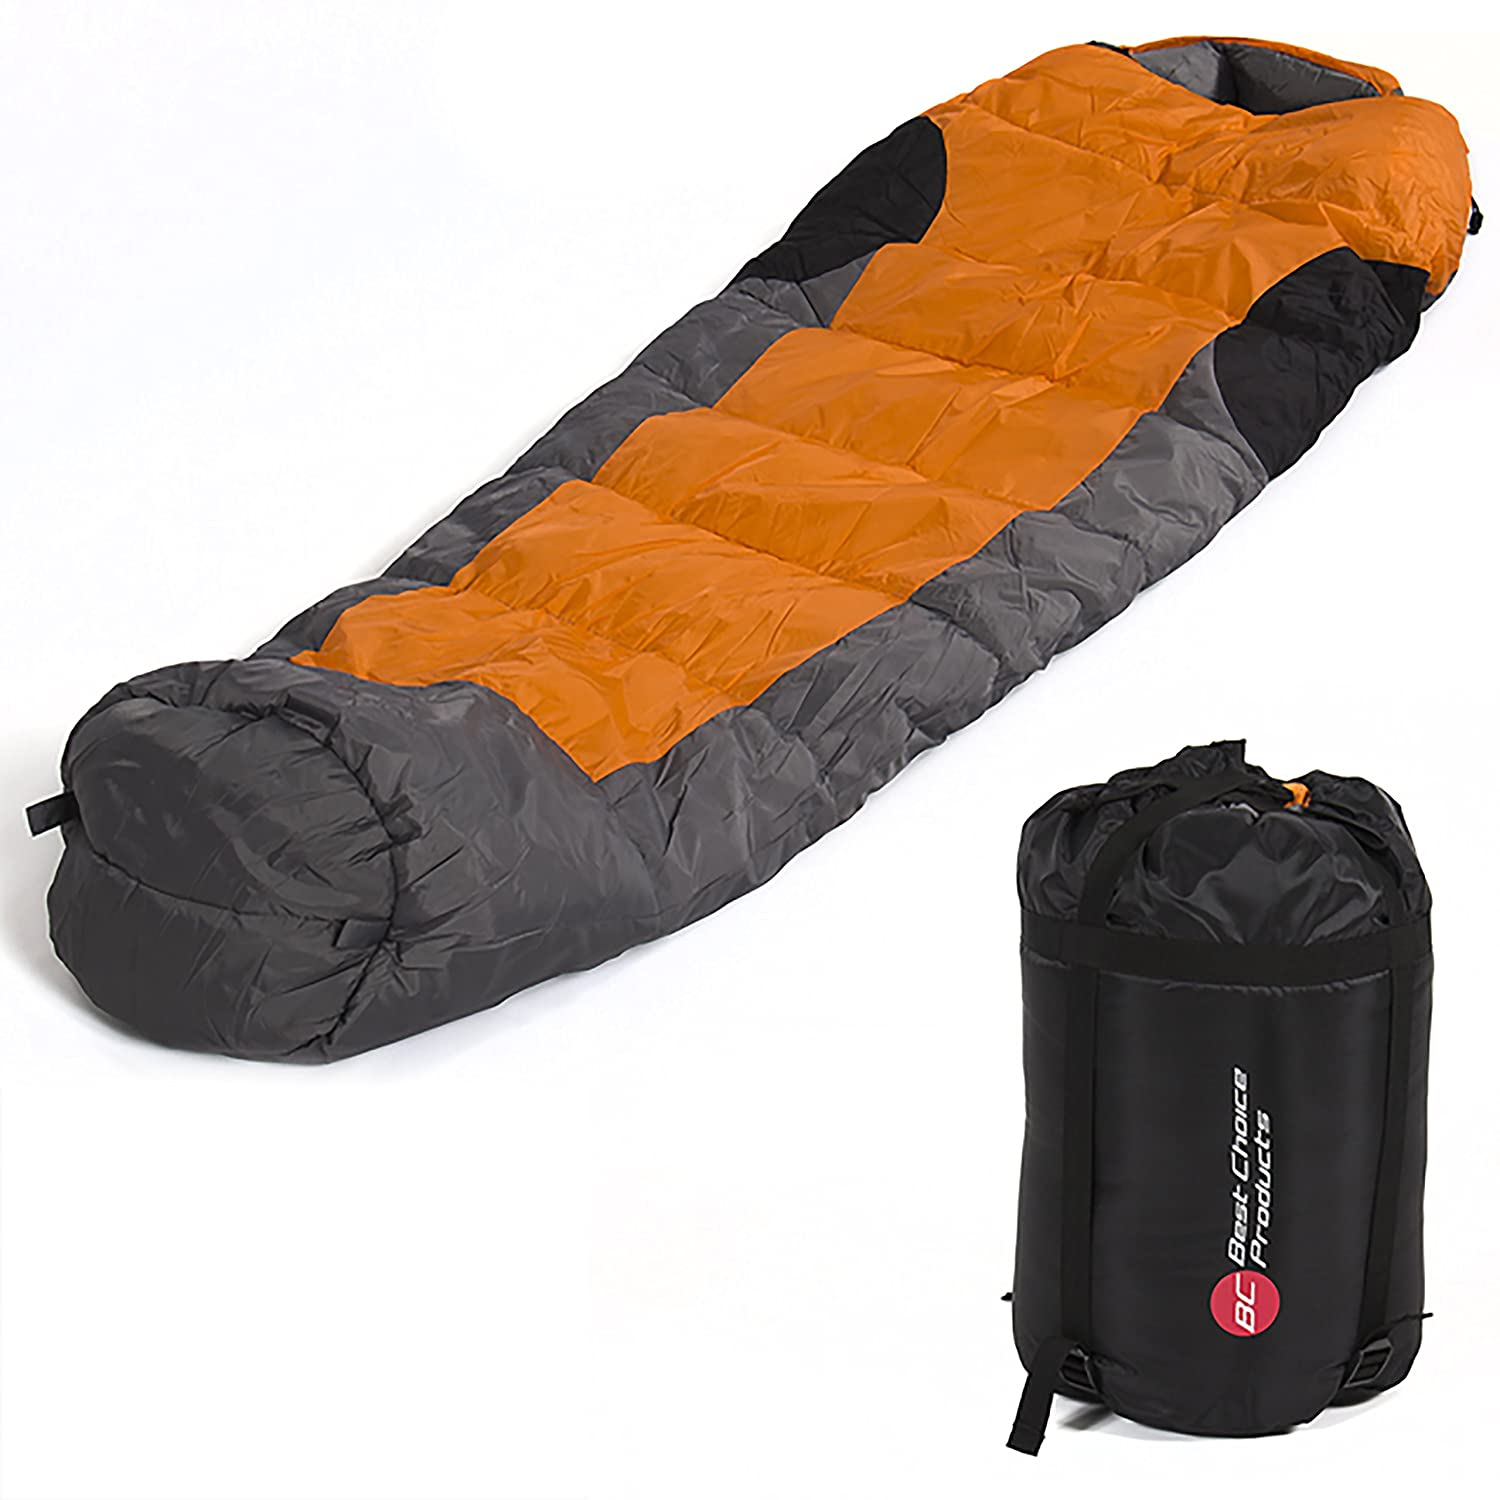 Amazon.com : Mummy Sleeping Bag 5F/-15C Camping Hiking With Carrying Case Brand New : Sports & Outdoors